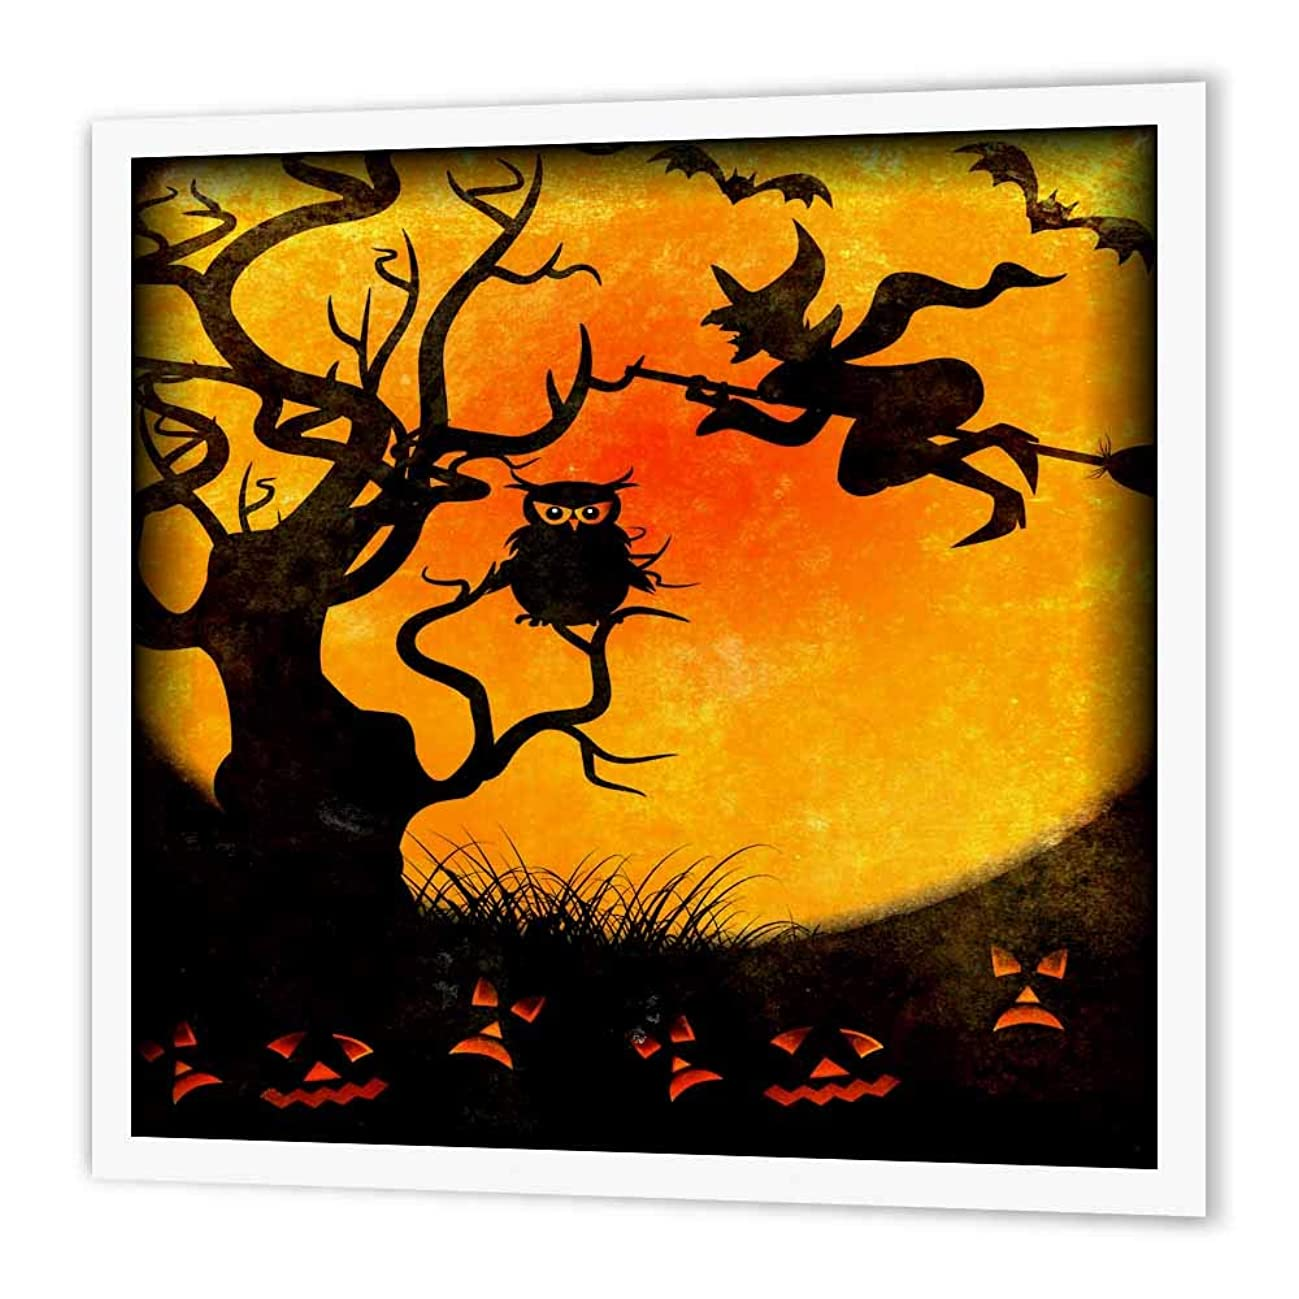 3dRose ht_24144_1 Halloween Backdrop-Iron on Heat Transfer Paper for White Material, 8 by 8-Inch